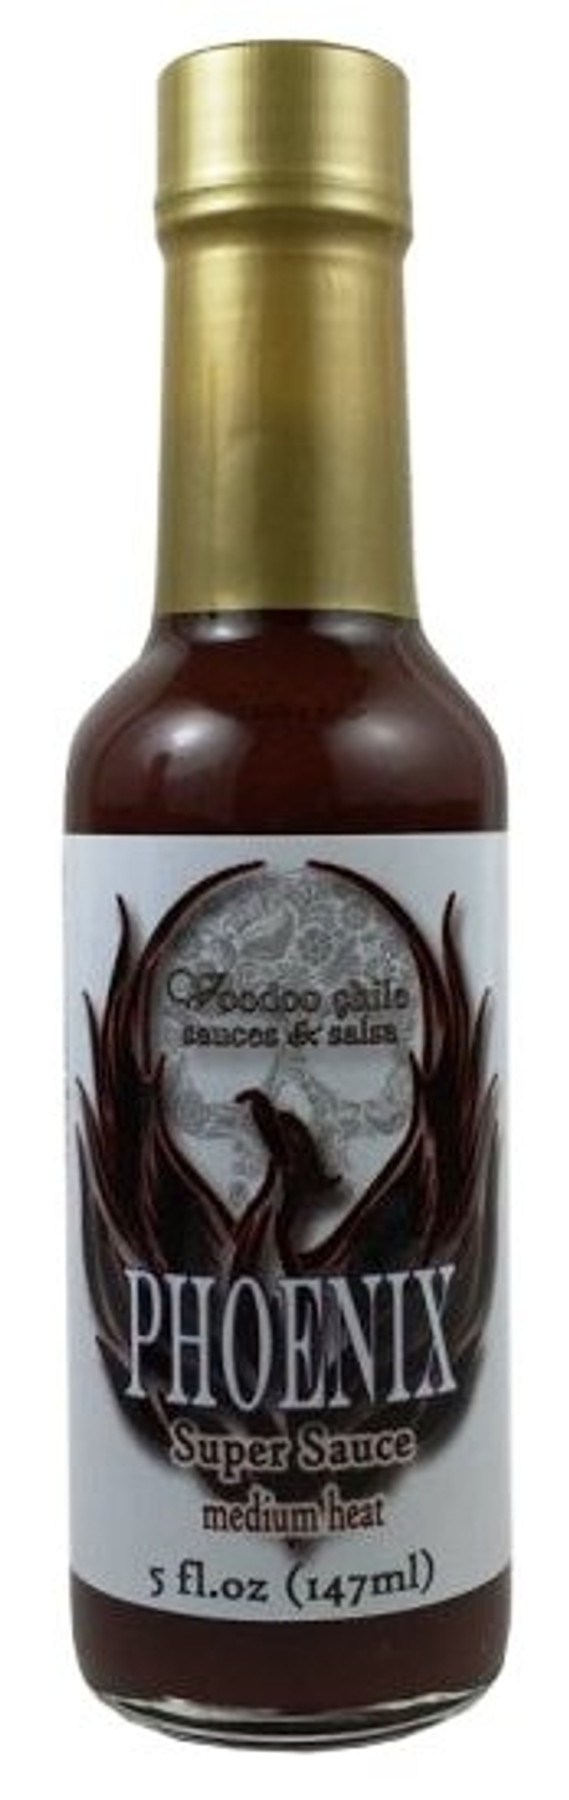 Voodoo Chile Phoenix Super Sauce available at Pepper Explosion Hot Sauce Store